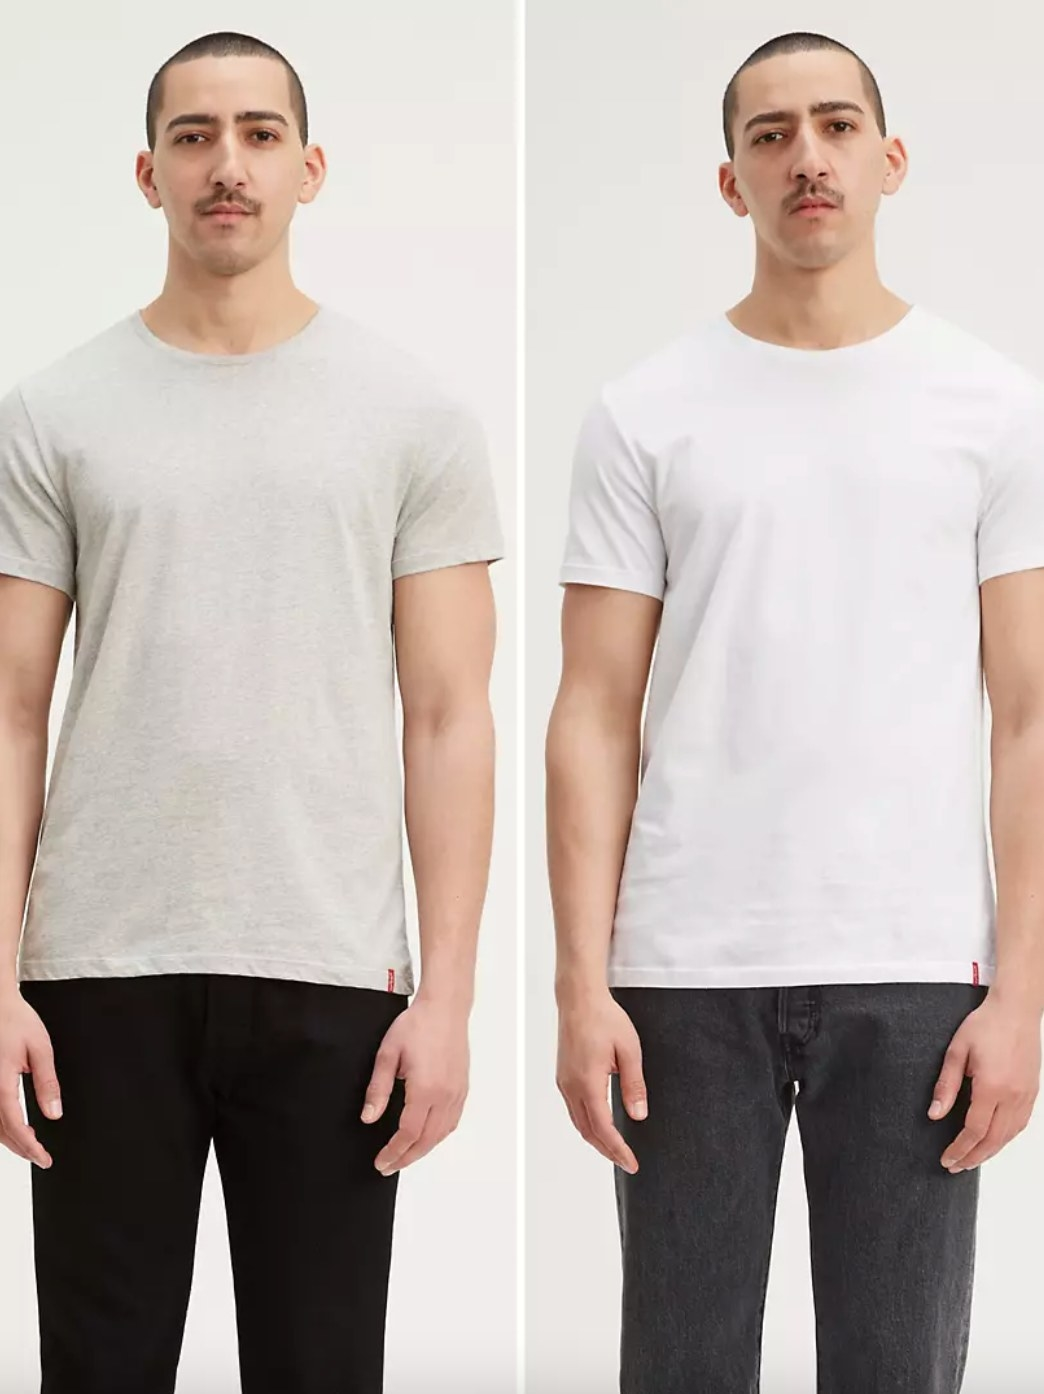 The two-pack of slim fit crewneck tees